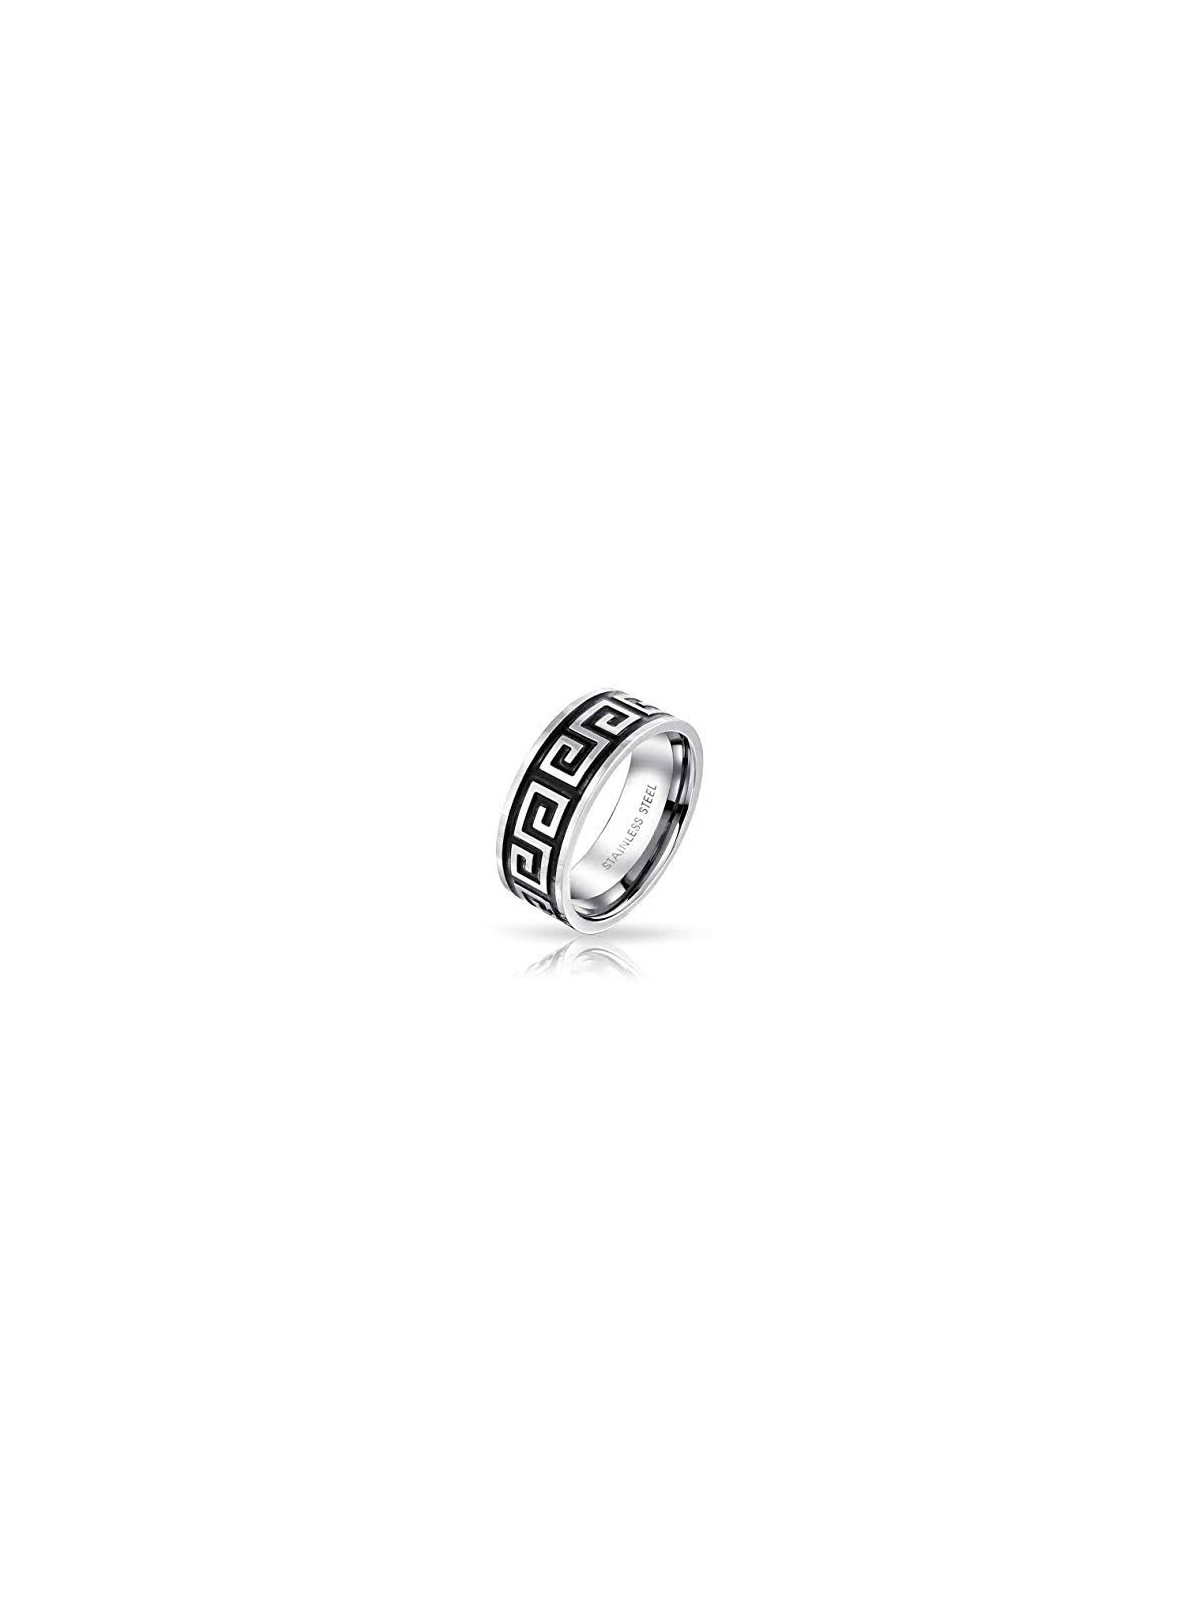 Stainless Steel Ring - 1